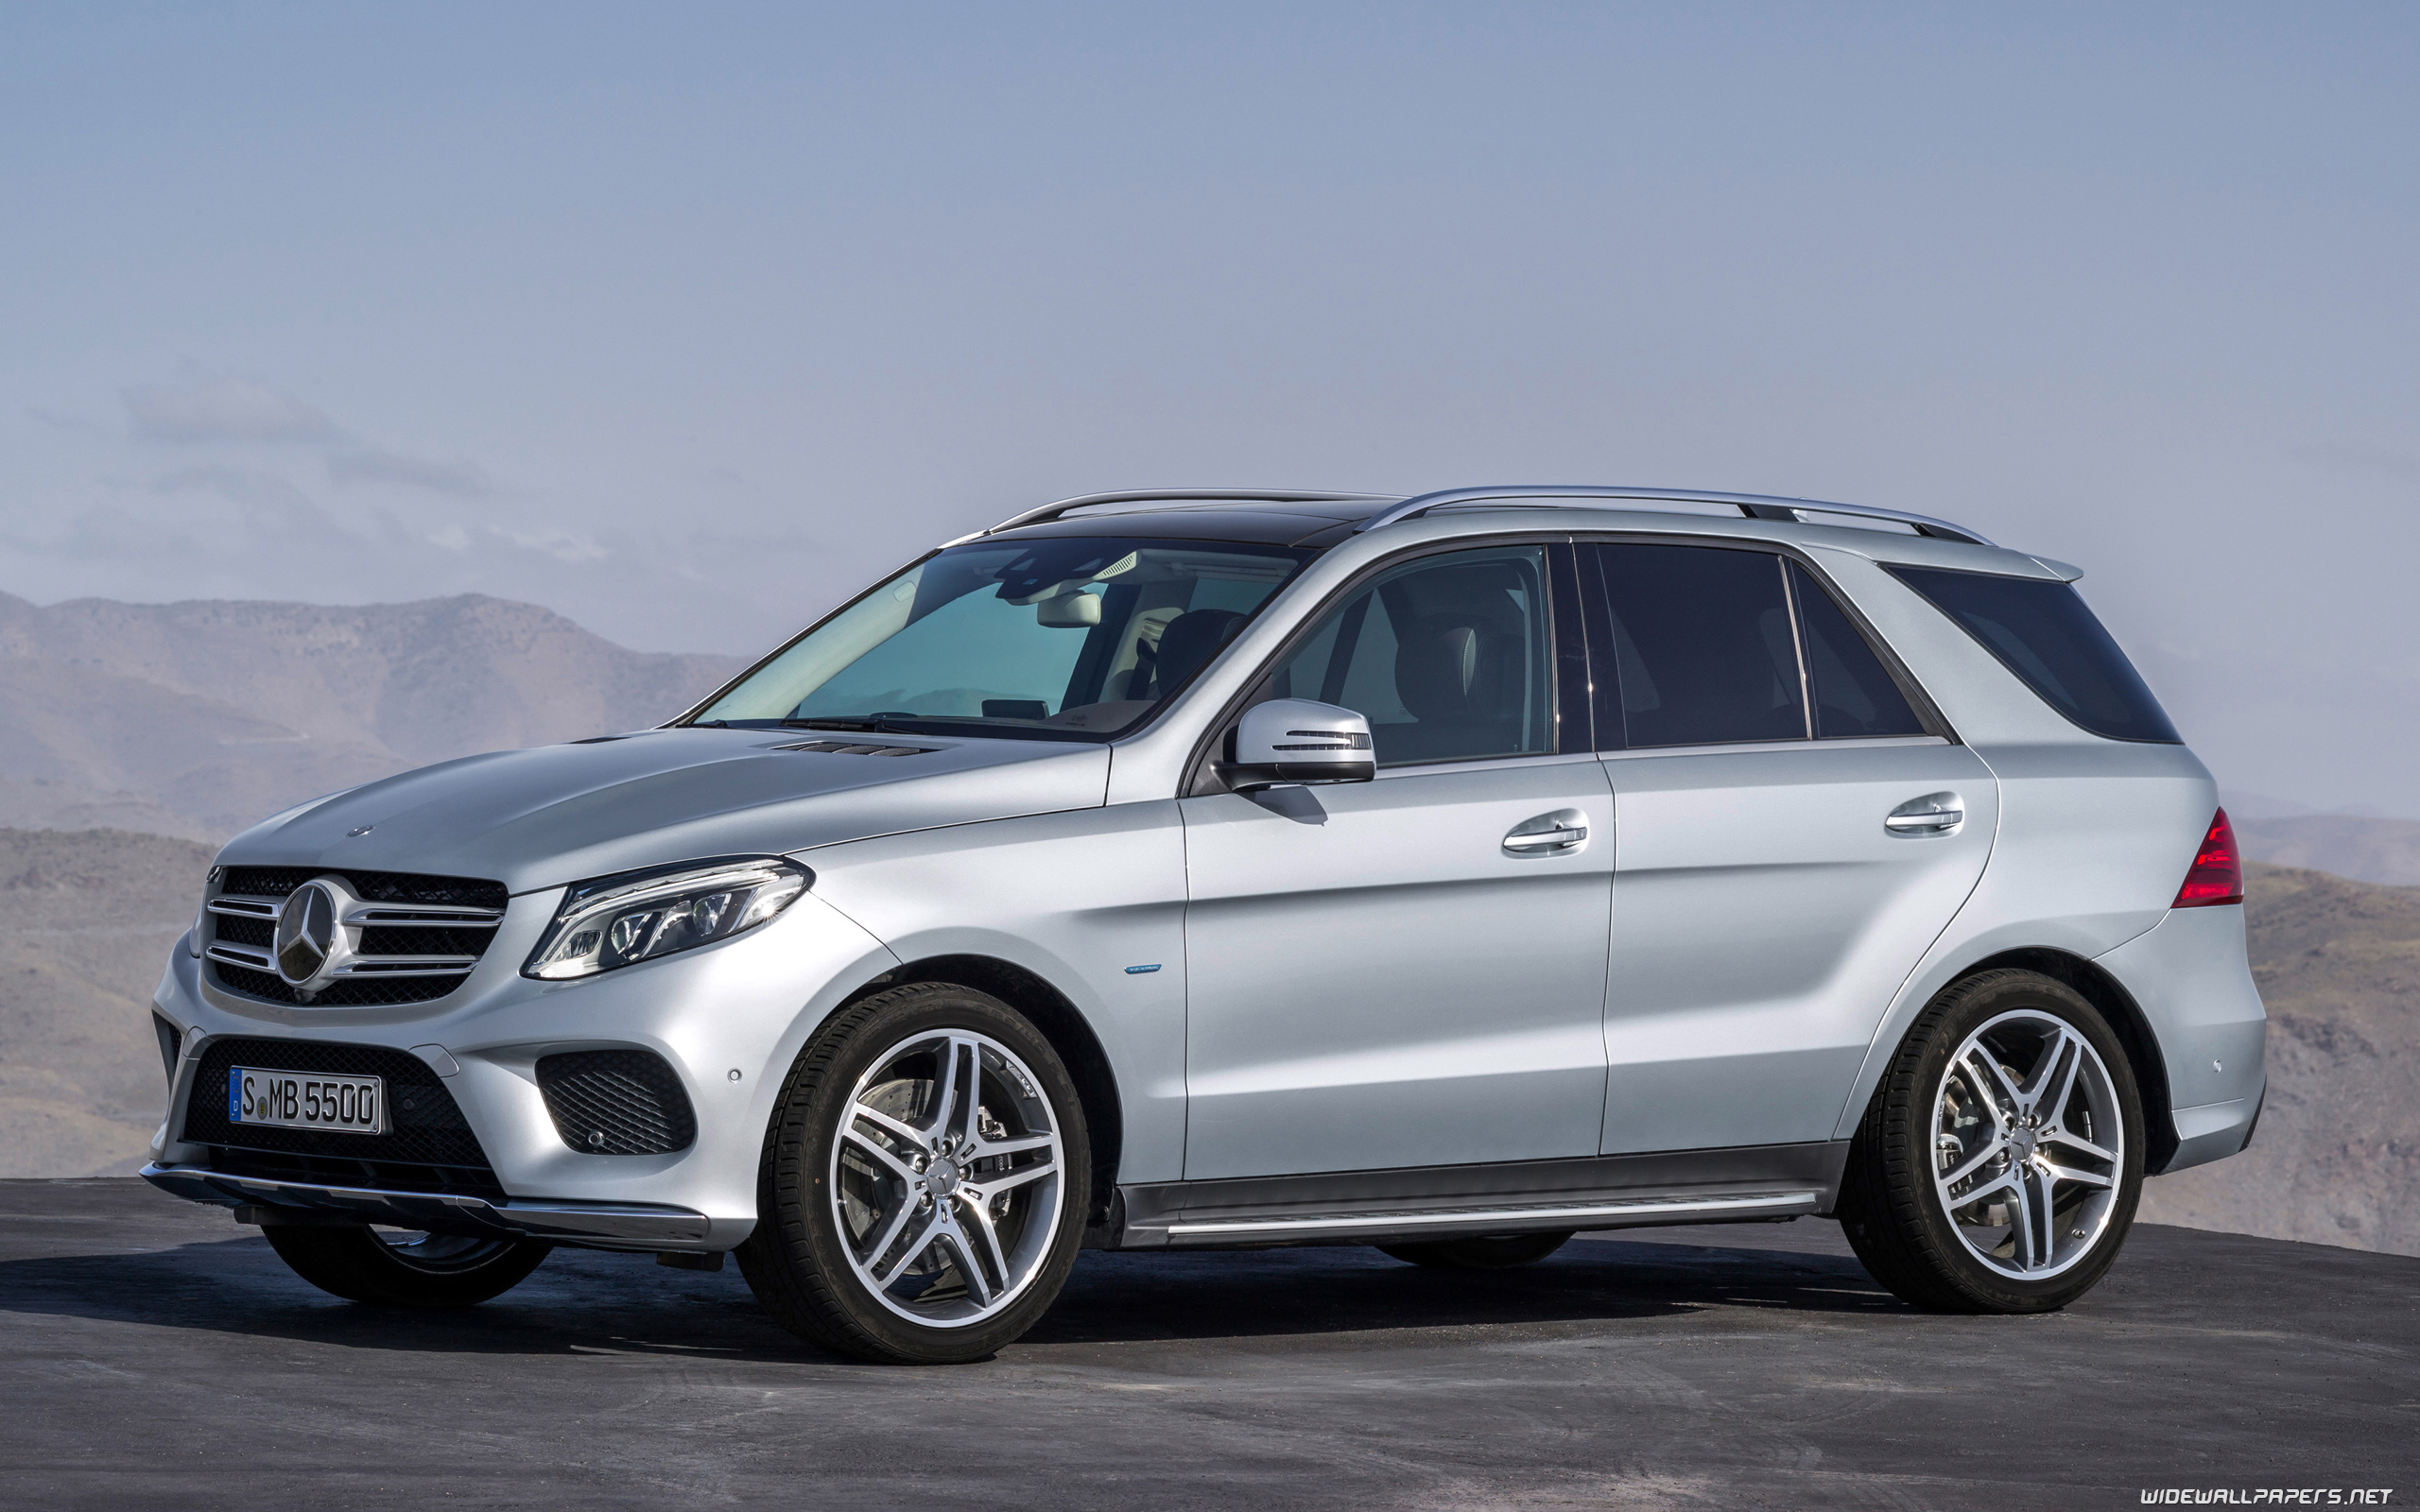 mercedes benz gle class cars desktop wallpapers 4k ultra hd page 2. Black Bedroom Furniture Sets. Home Design Ideas